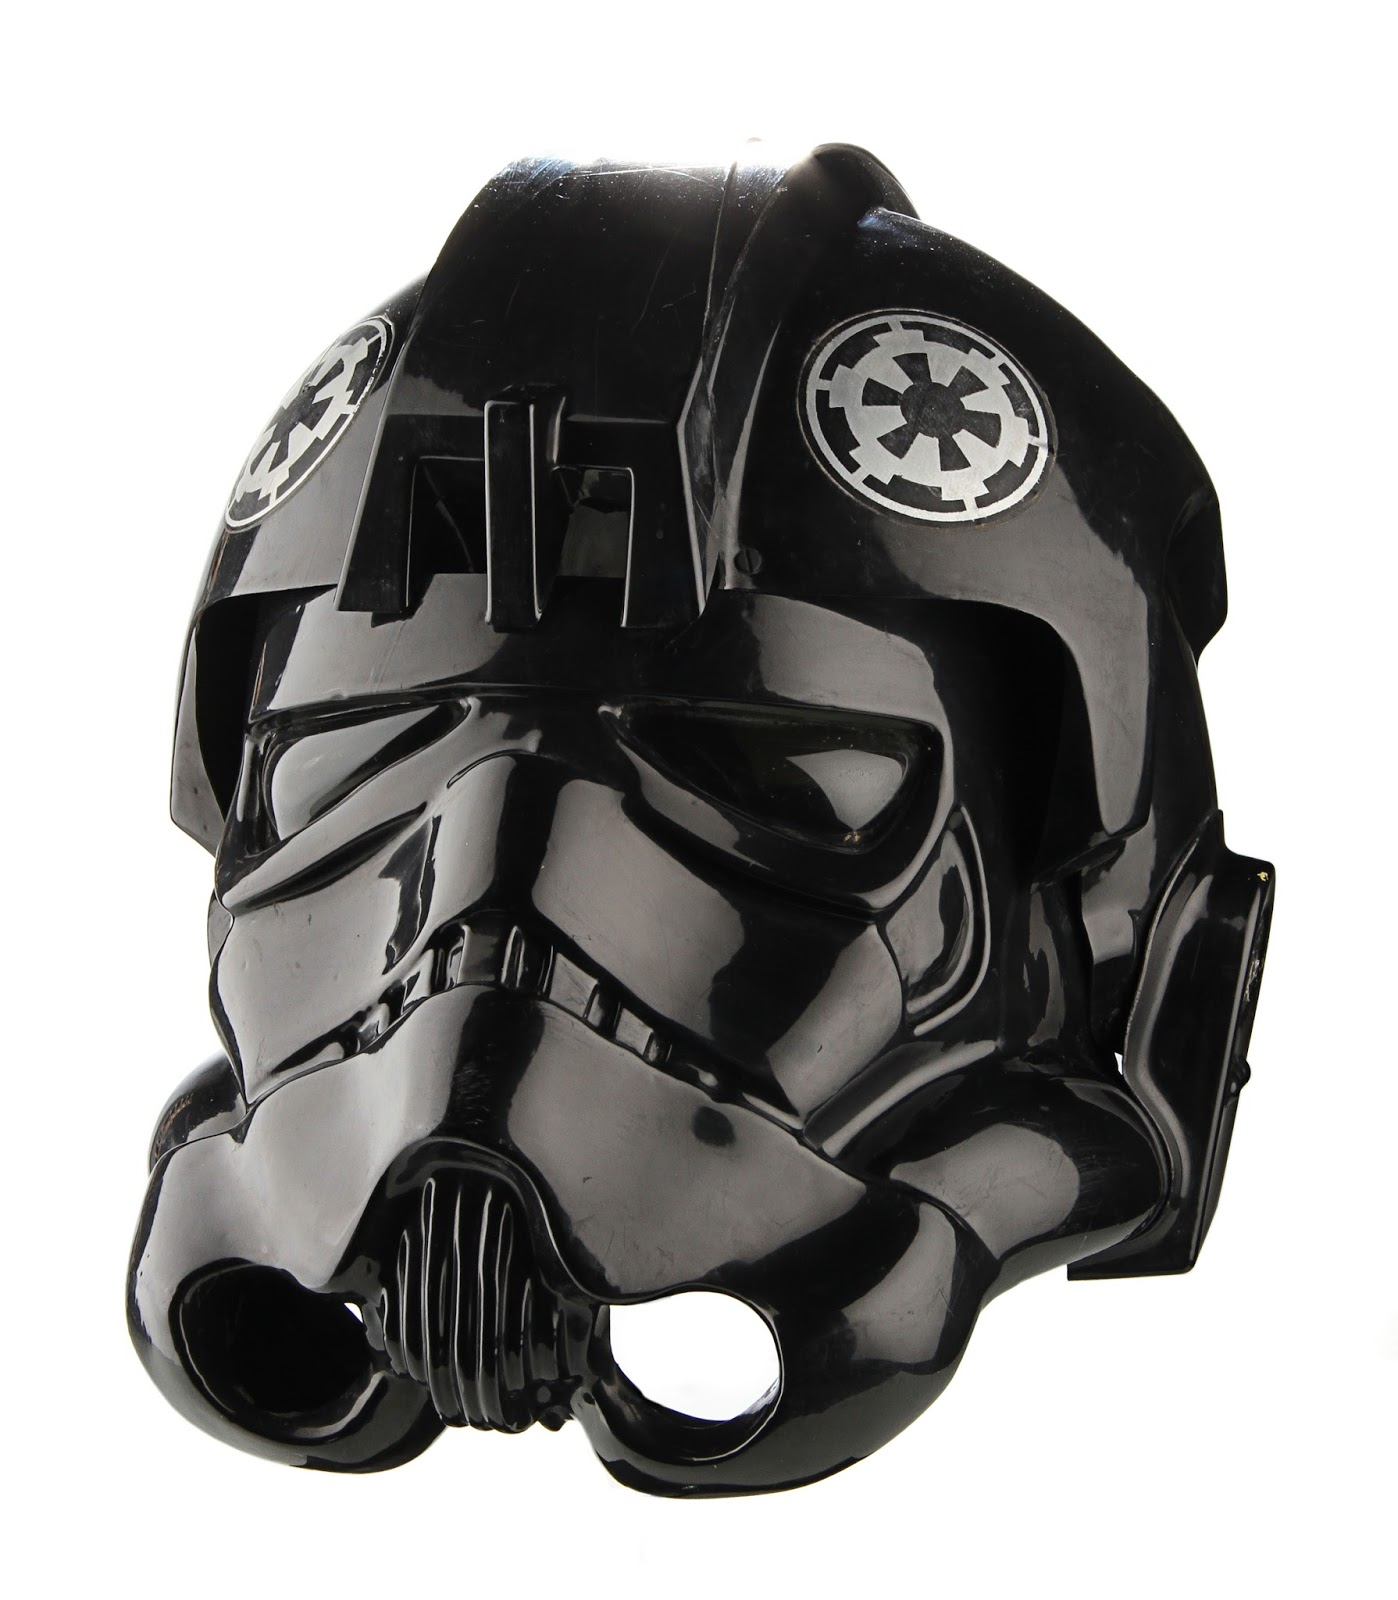 94e208e18017e Star Wars TIE Fighter Pilot Helmet - The Prop Store Ultimate Movie  Collectables Auction